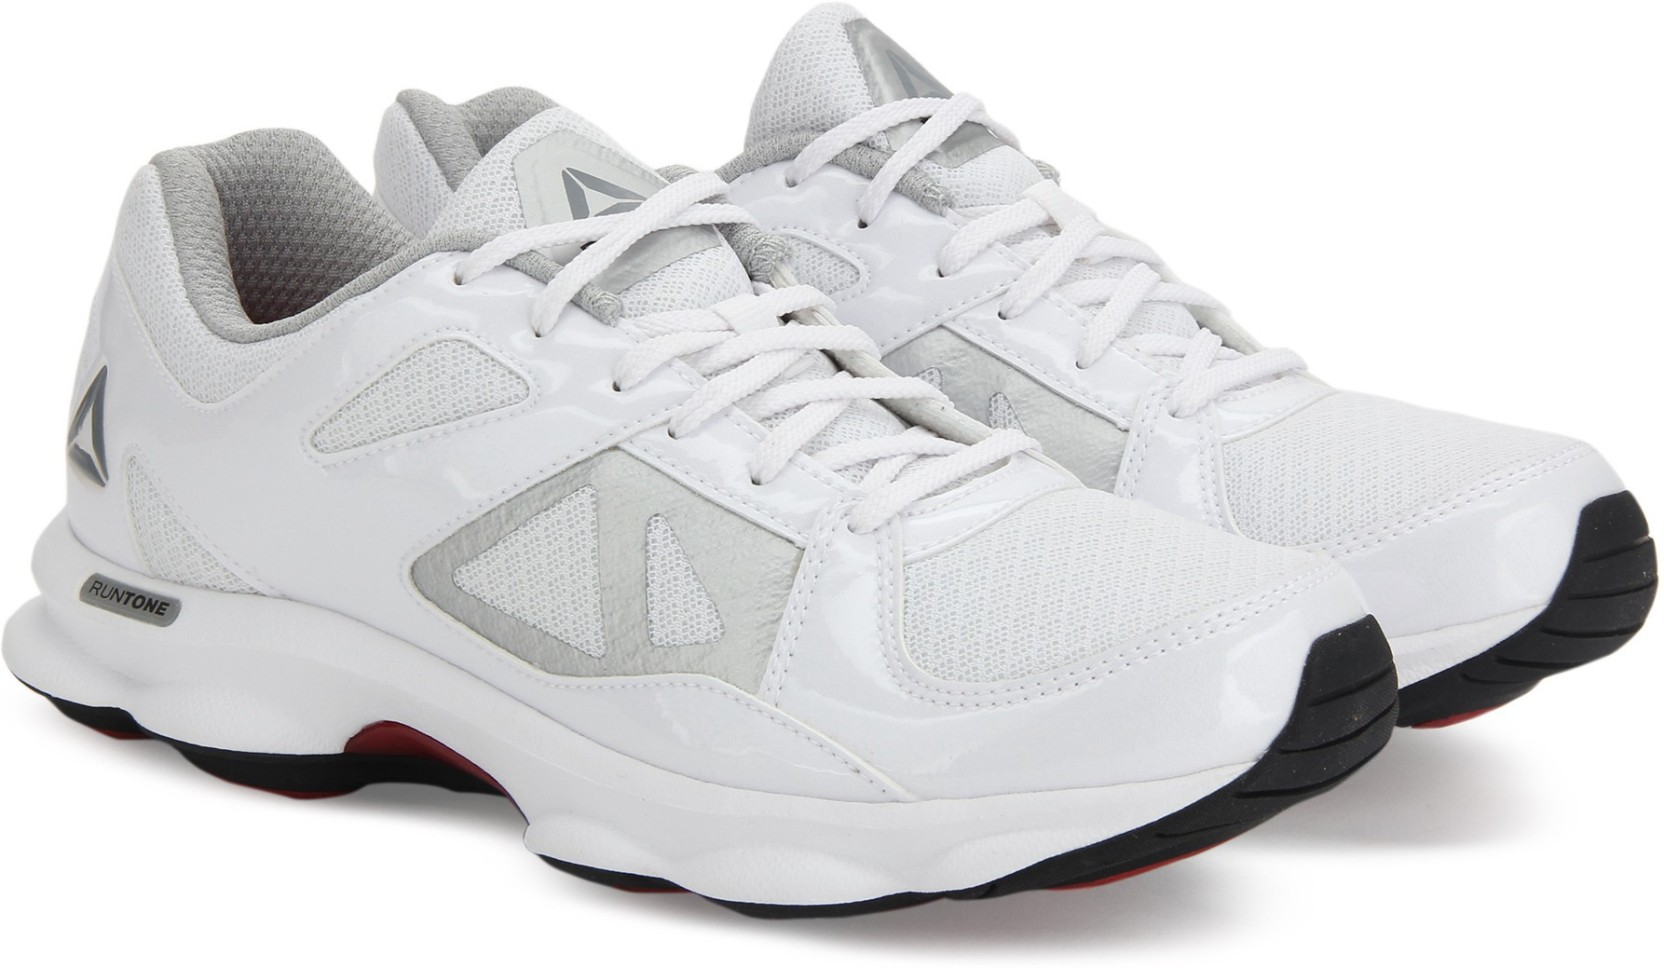 122d64d2a787 Reebok runtone doheny training shoes for men buy white red jpg 1664x968 Reebok  runtone shoes